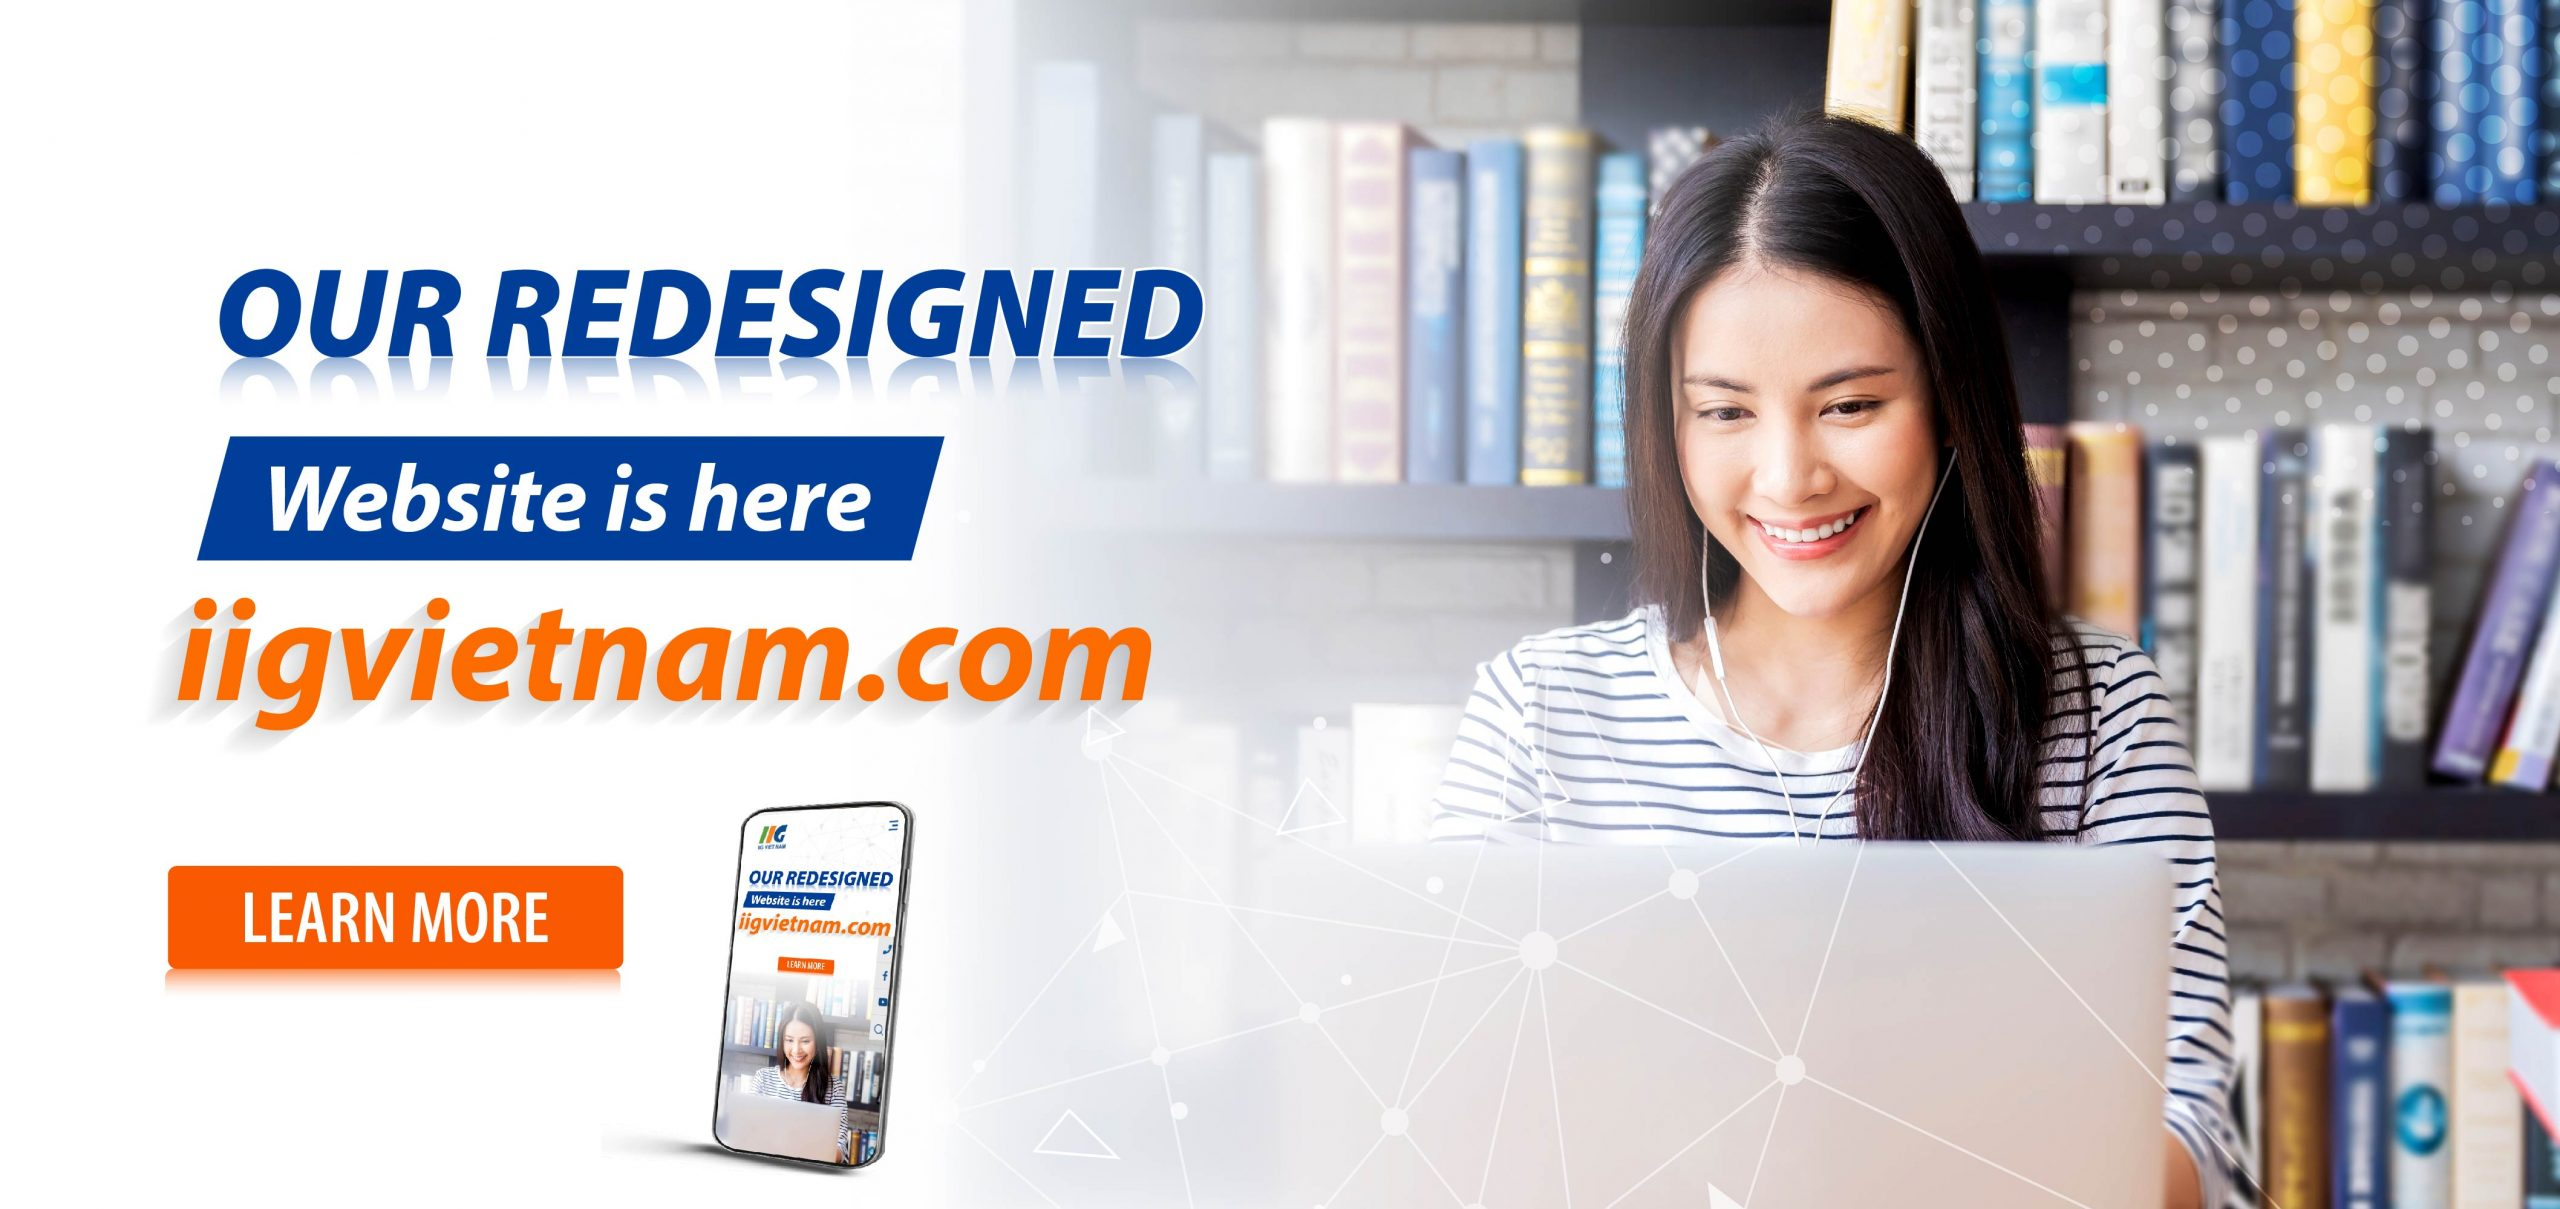 Announcing the launch of our redesigned website – iigvietnam.com